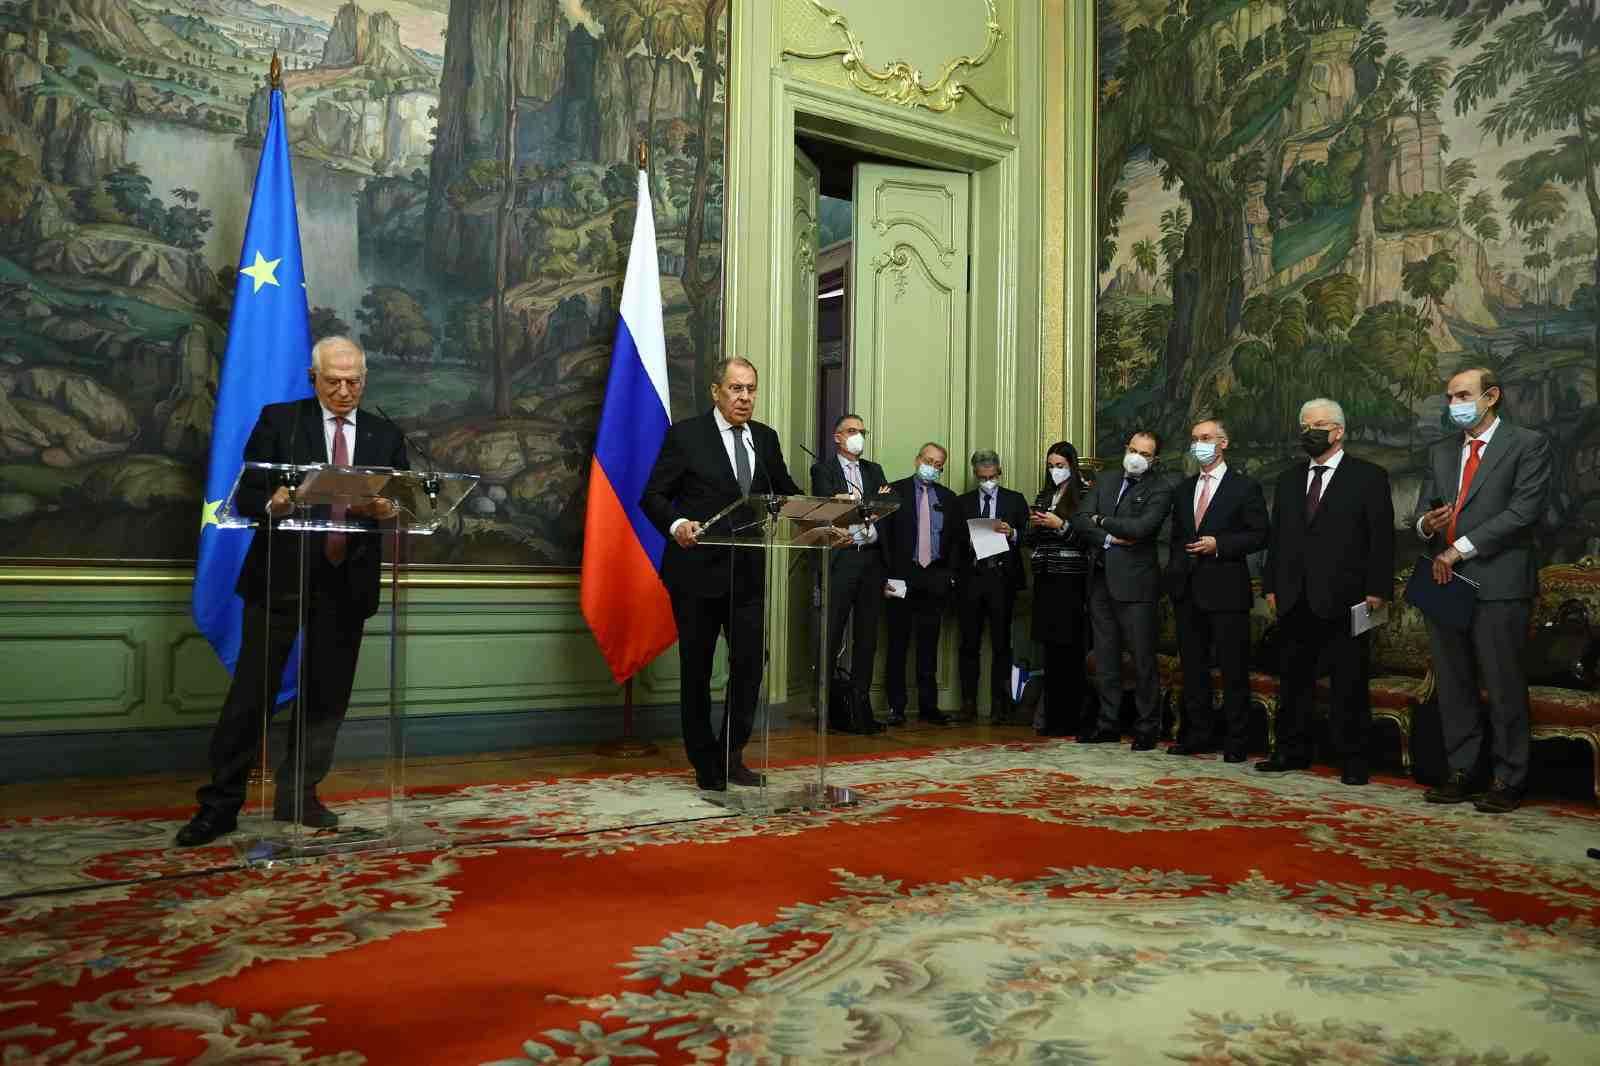 Foreign Minister Sergey Lavrov's remarks and answers to media questions at a joint news conference following talks with High Representative of the European Union for Foreign Affairs and Security Policy and Vice President of the European Commission Josep Borrell, Moscow, February 5, 2021